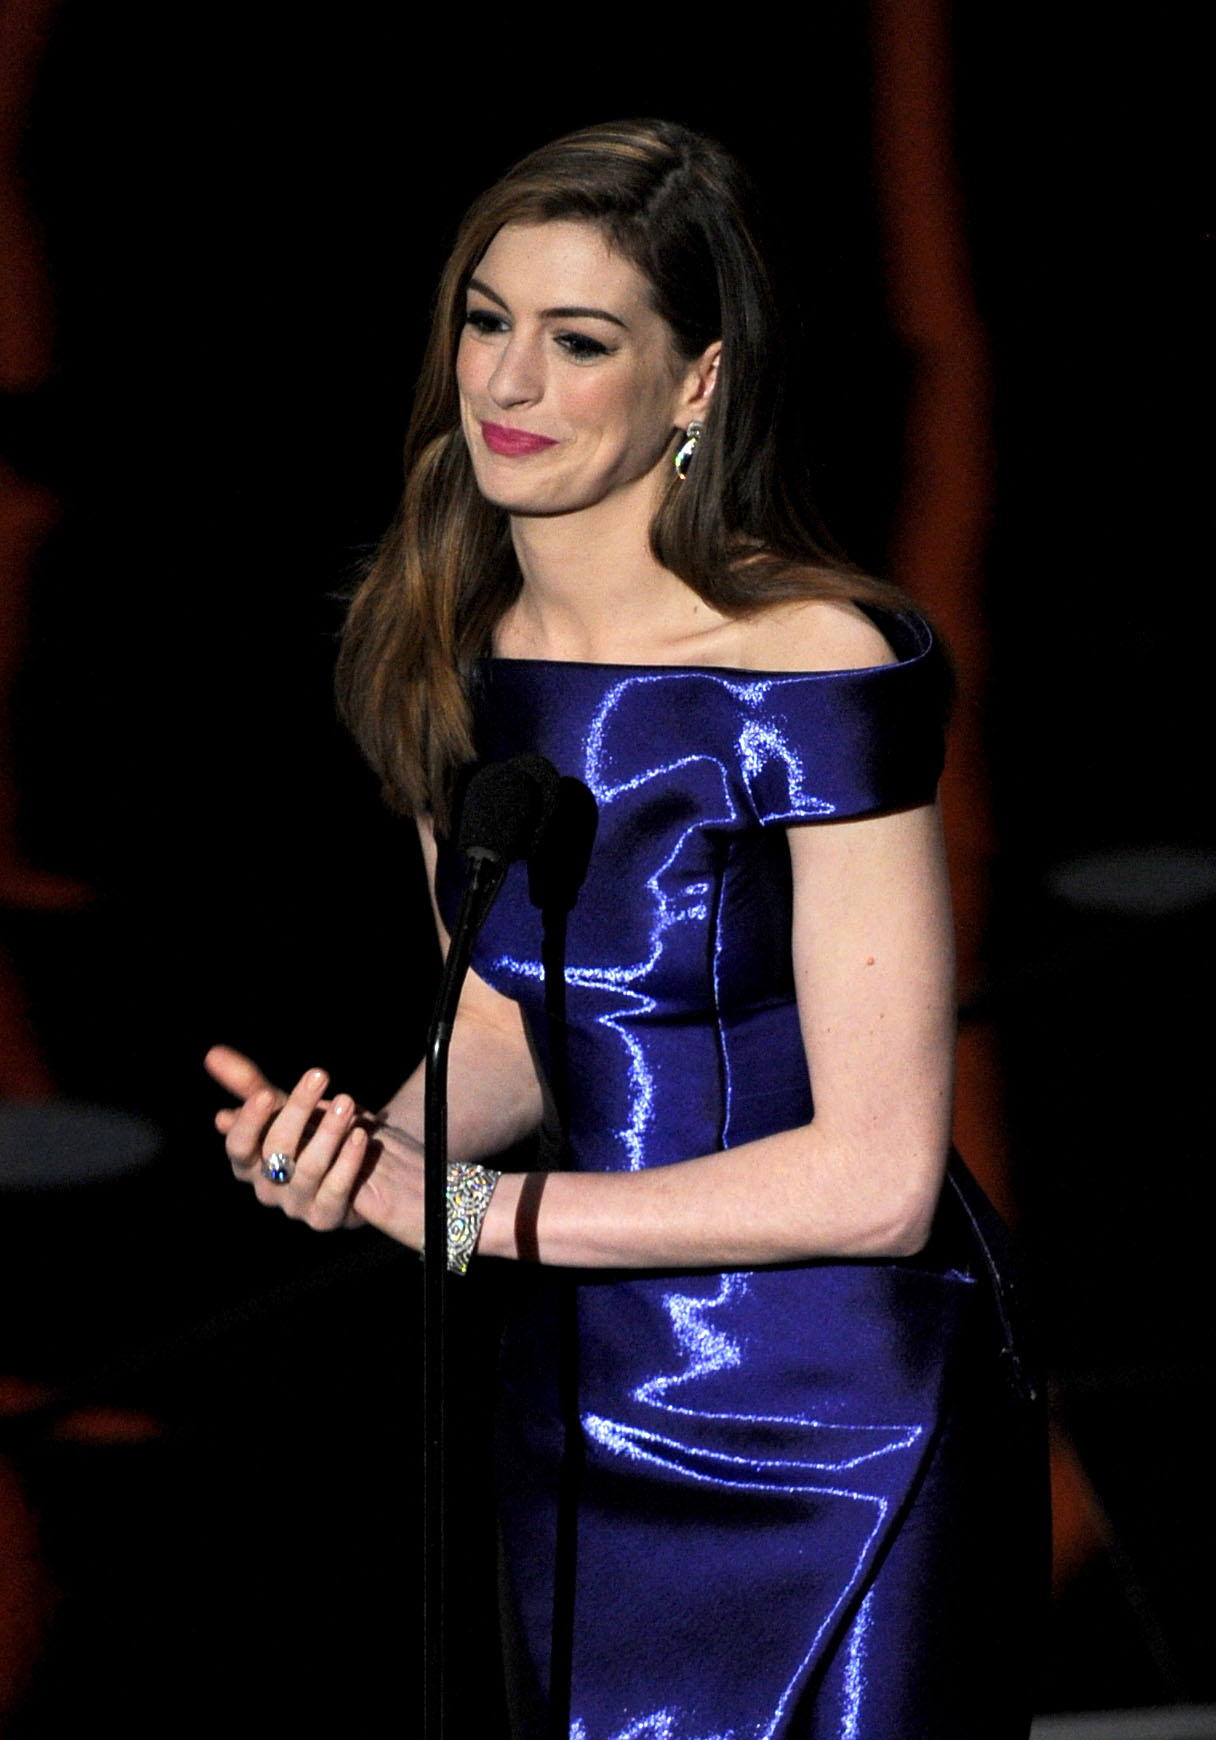 Anne Hathaway hosting the 83rd Annual Academy Awards in Hollywood, Ca. on Feb. 27, 2011.